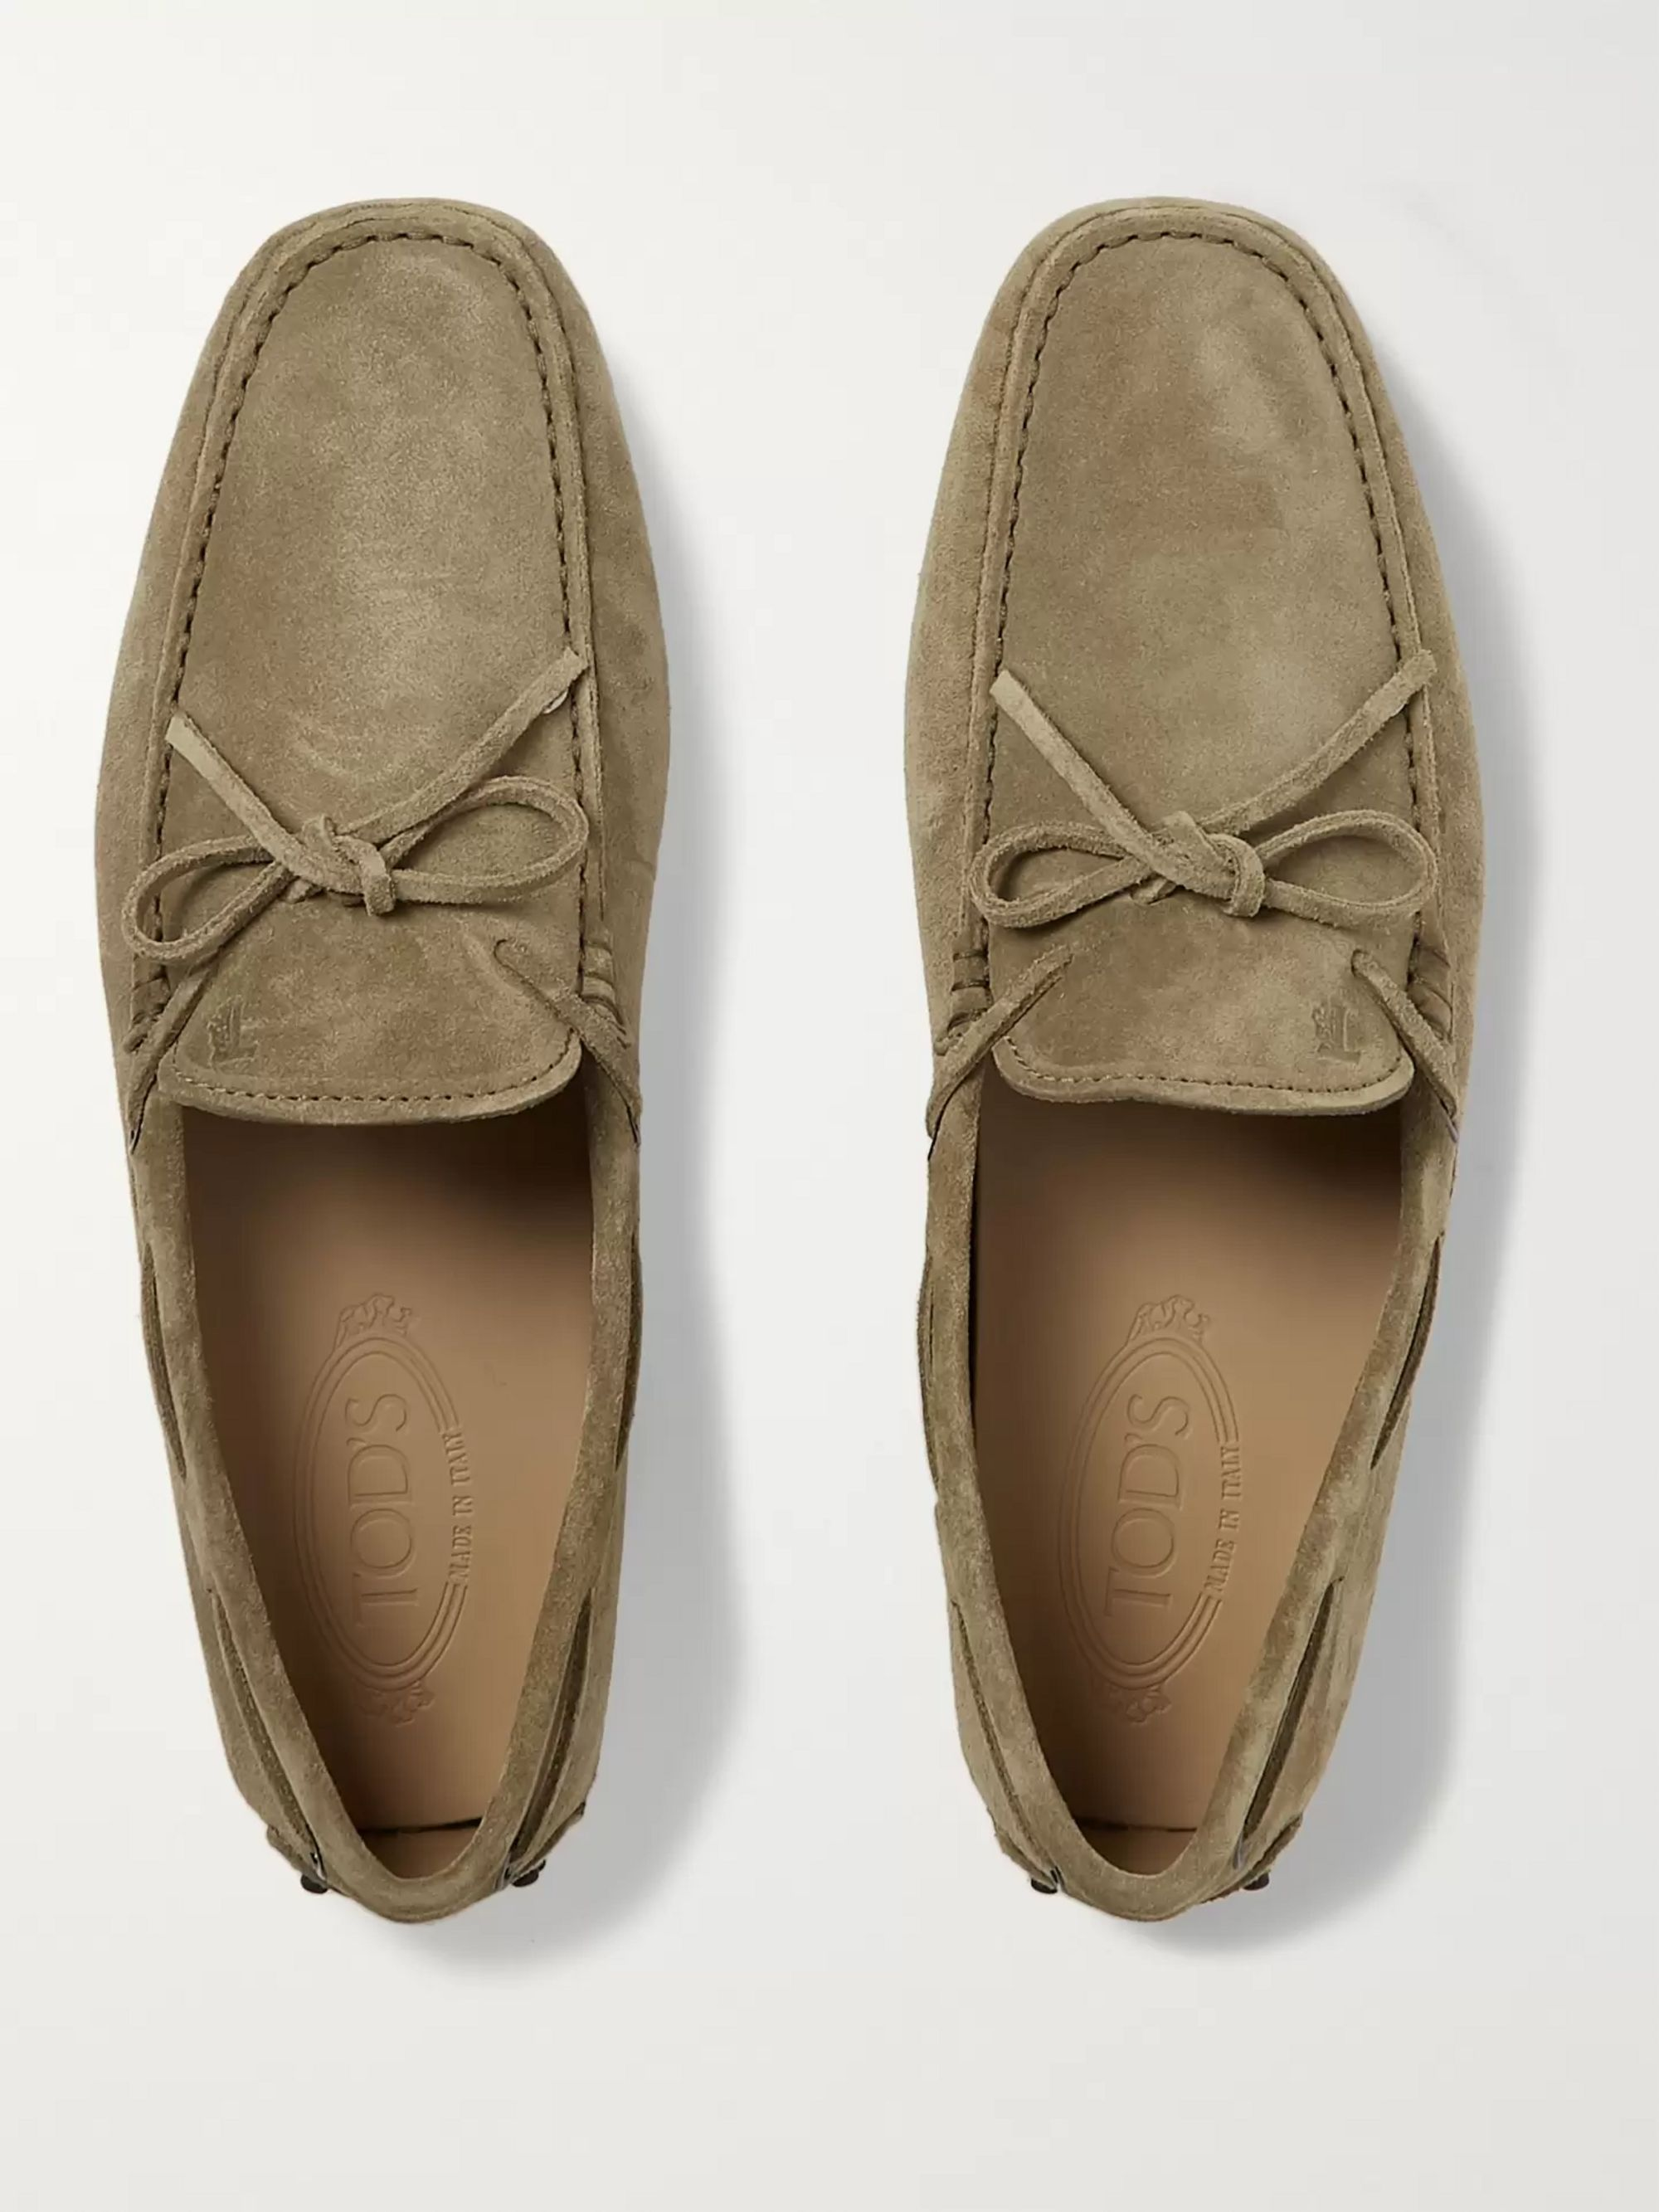 Tod's Gommino Suede Driving Shoes